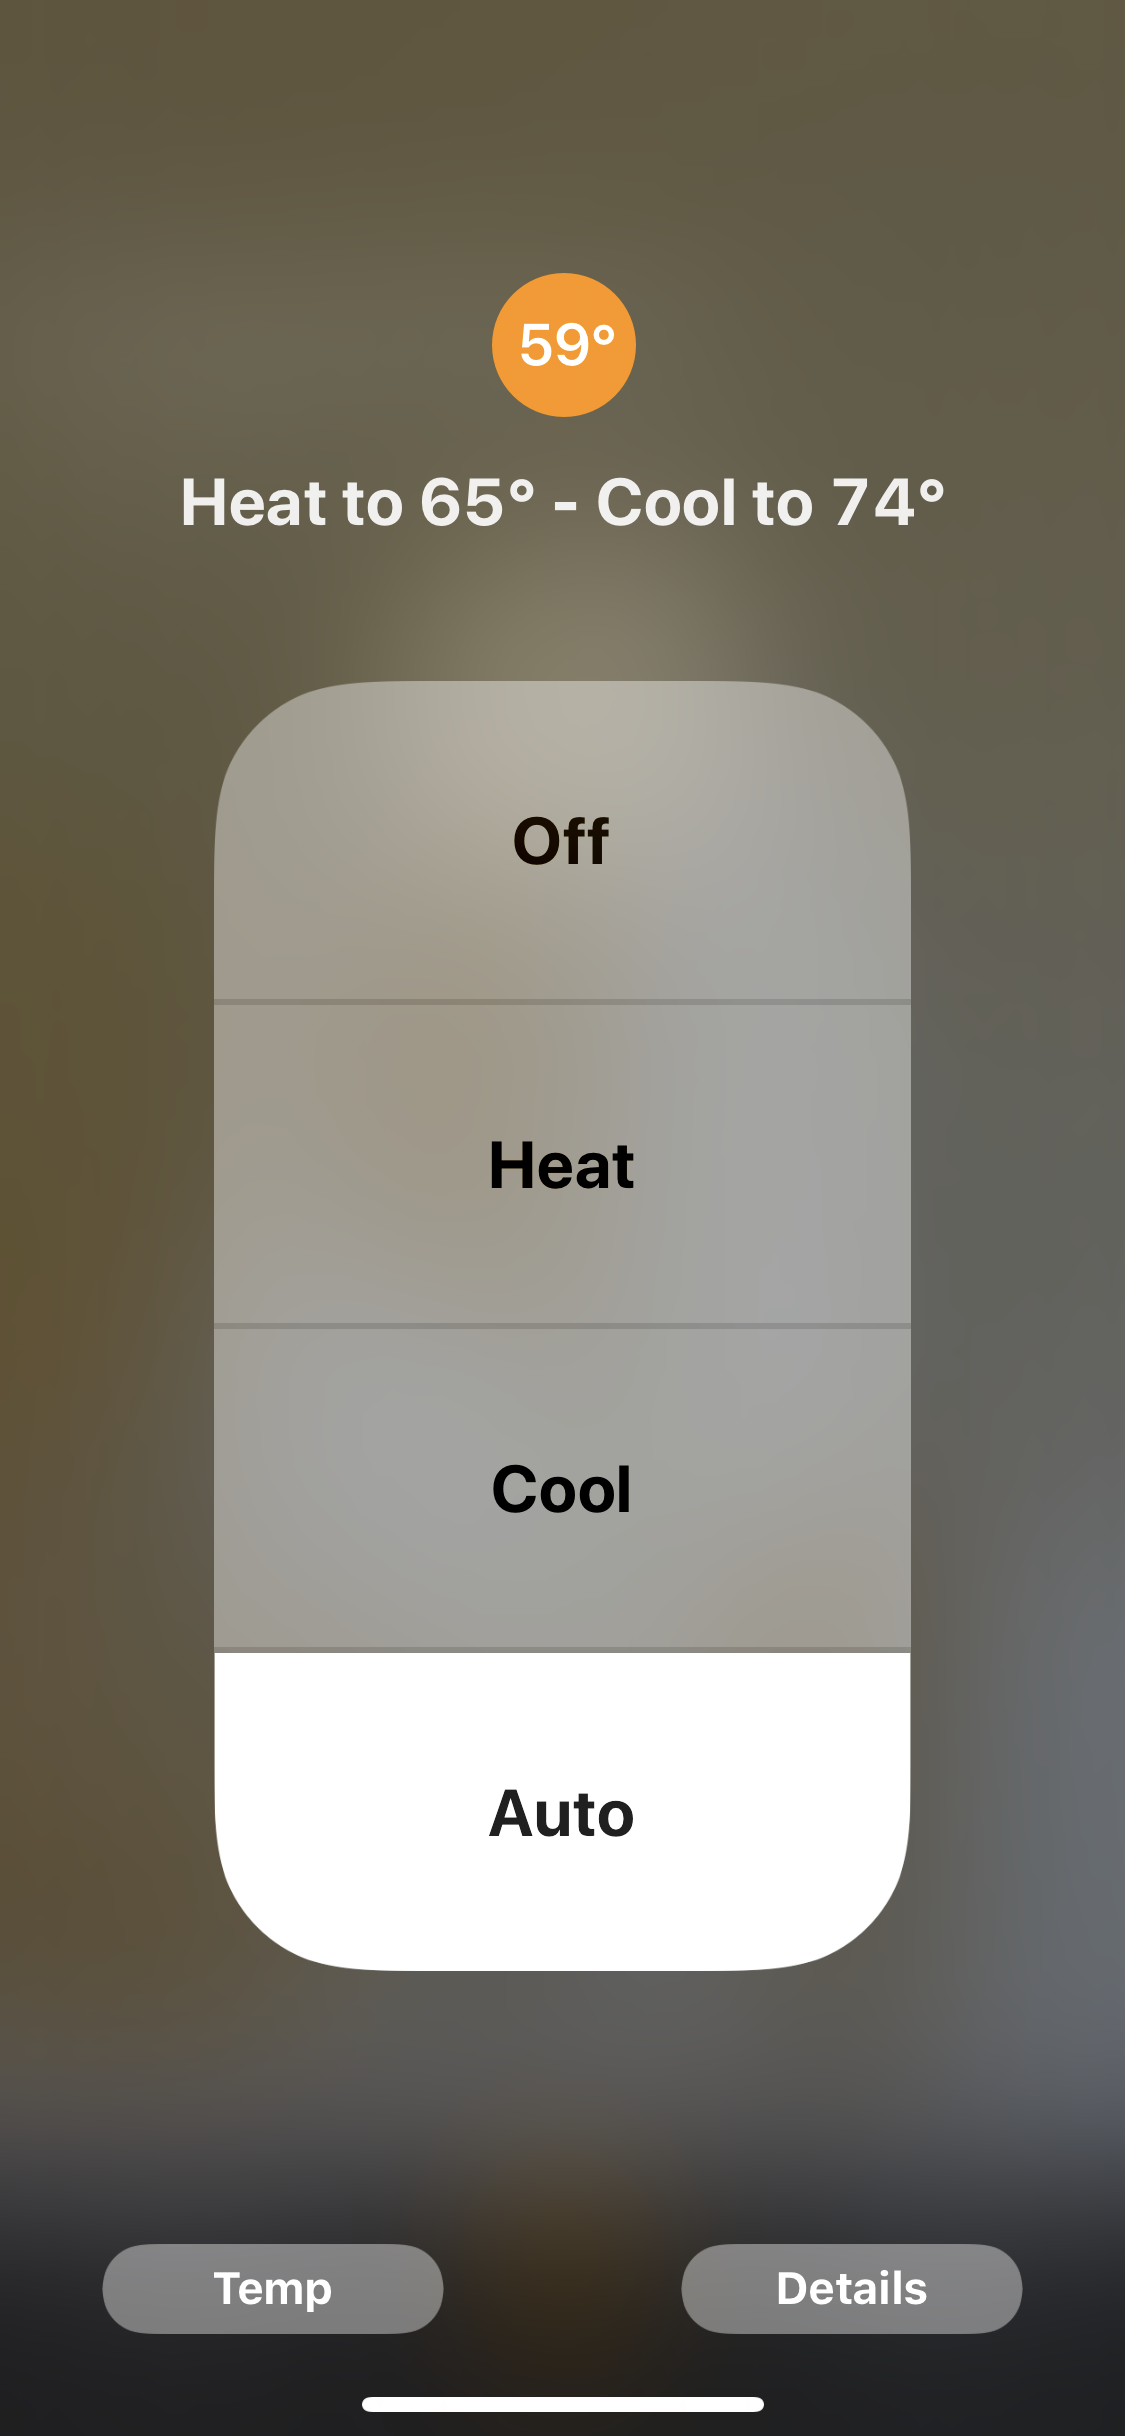 How To Make Your Own Homekit Enabled Thermostat Using Raspberry Pi 3 Gpio Ruby Wiringpi Additional Functionality